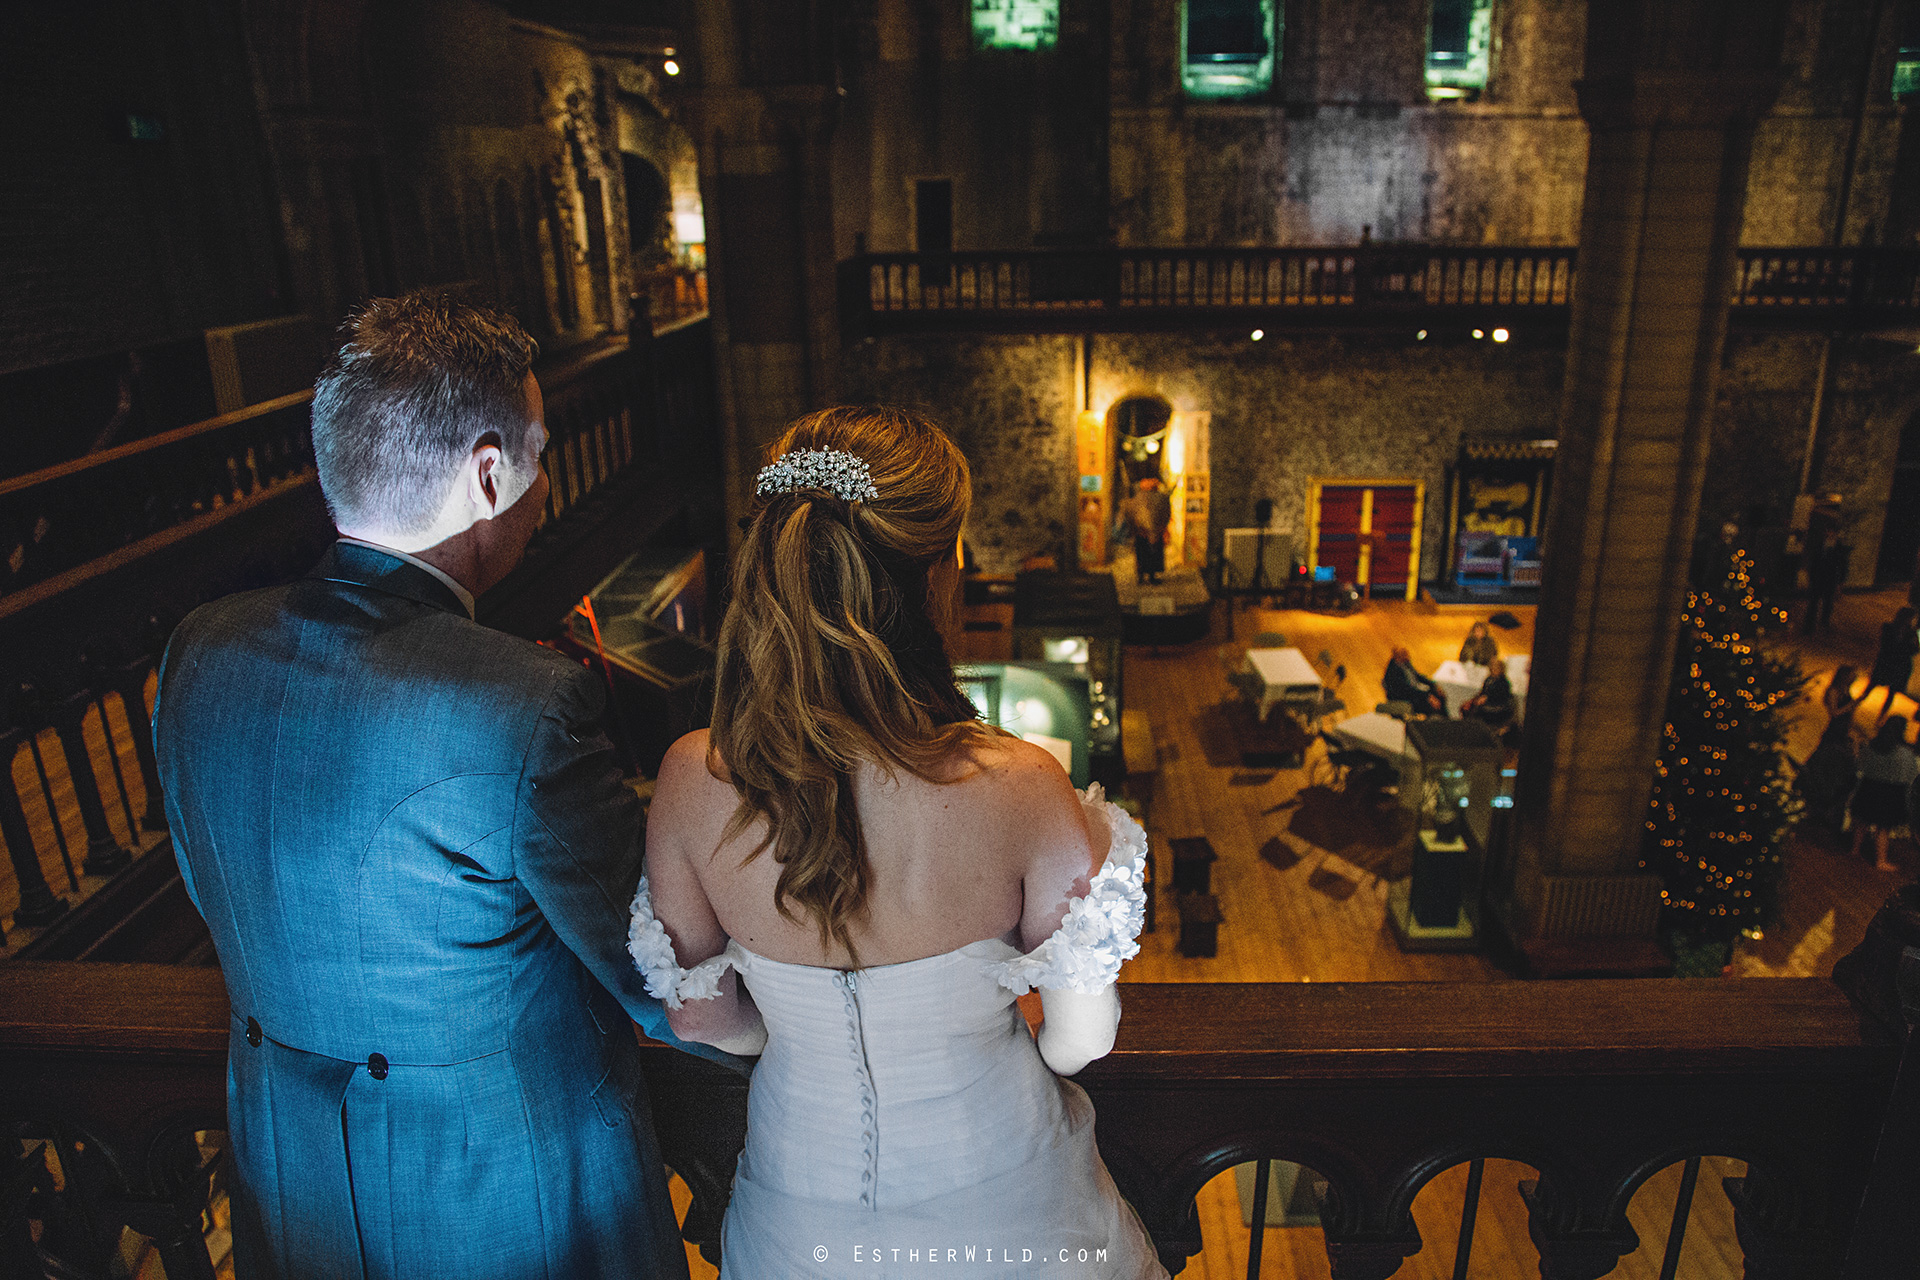 wedding_norwich_castle_norfolk_esther_wild_photographer_norfolk_brides (43).jpg